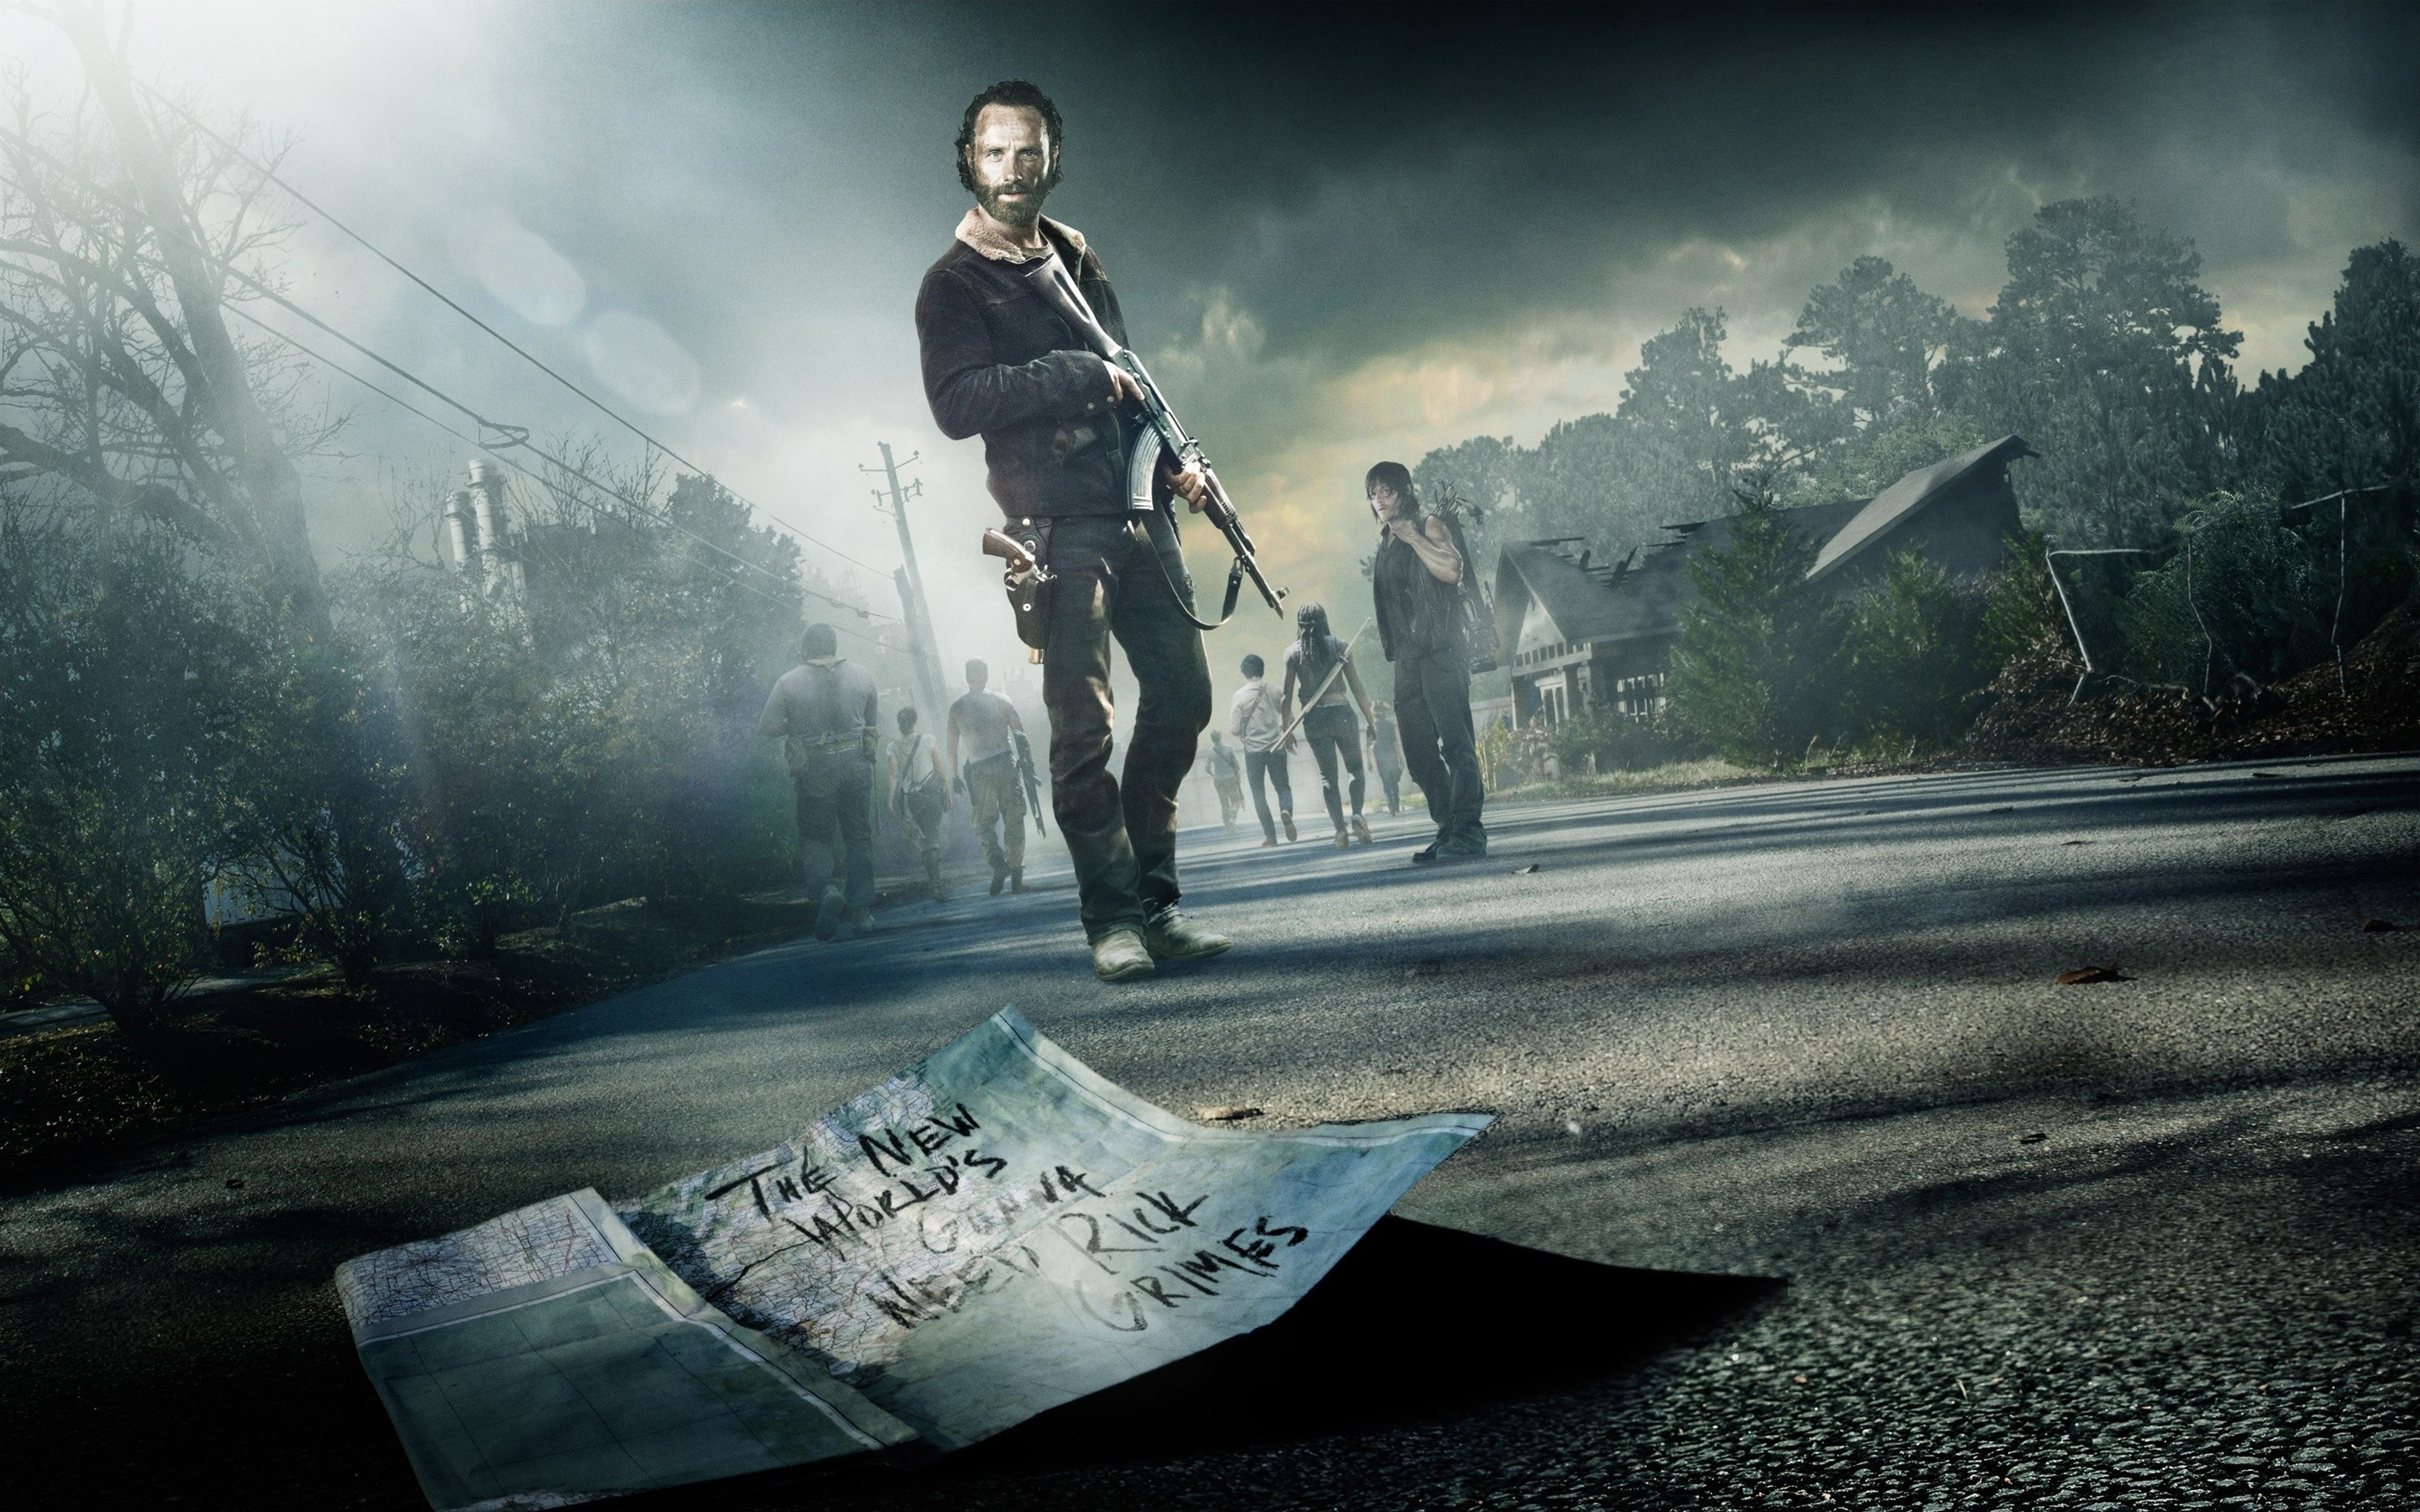 Wallpaper Of The Walking Dead 66 Images